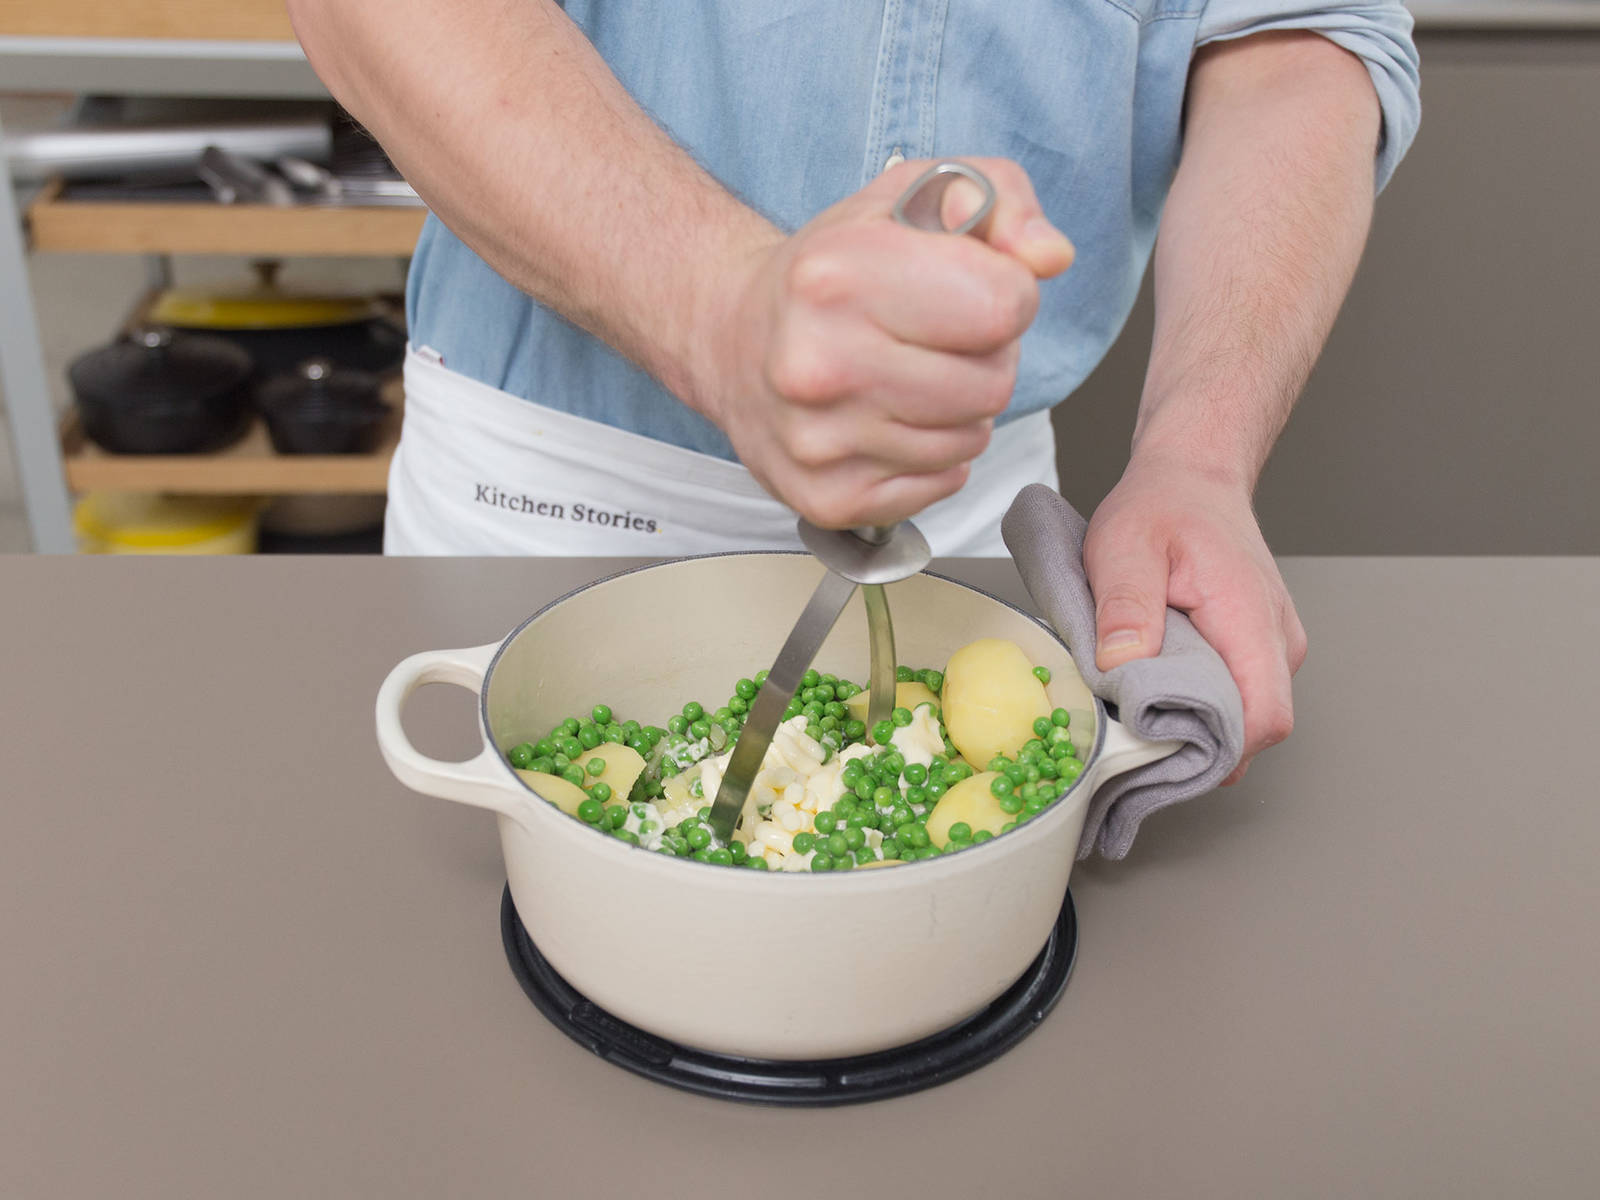 Peel potatoes and boil in salted water until tender, approx. 25 – 30 min. Drain water, then add peas, butter, and chicken stock. Mash until creamy and season with nutmeg, salt, and pepper.